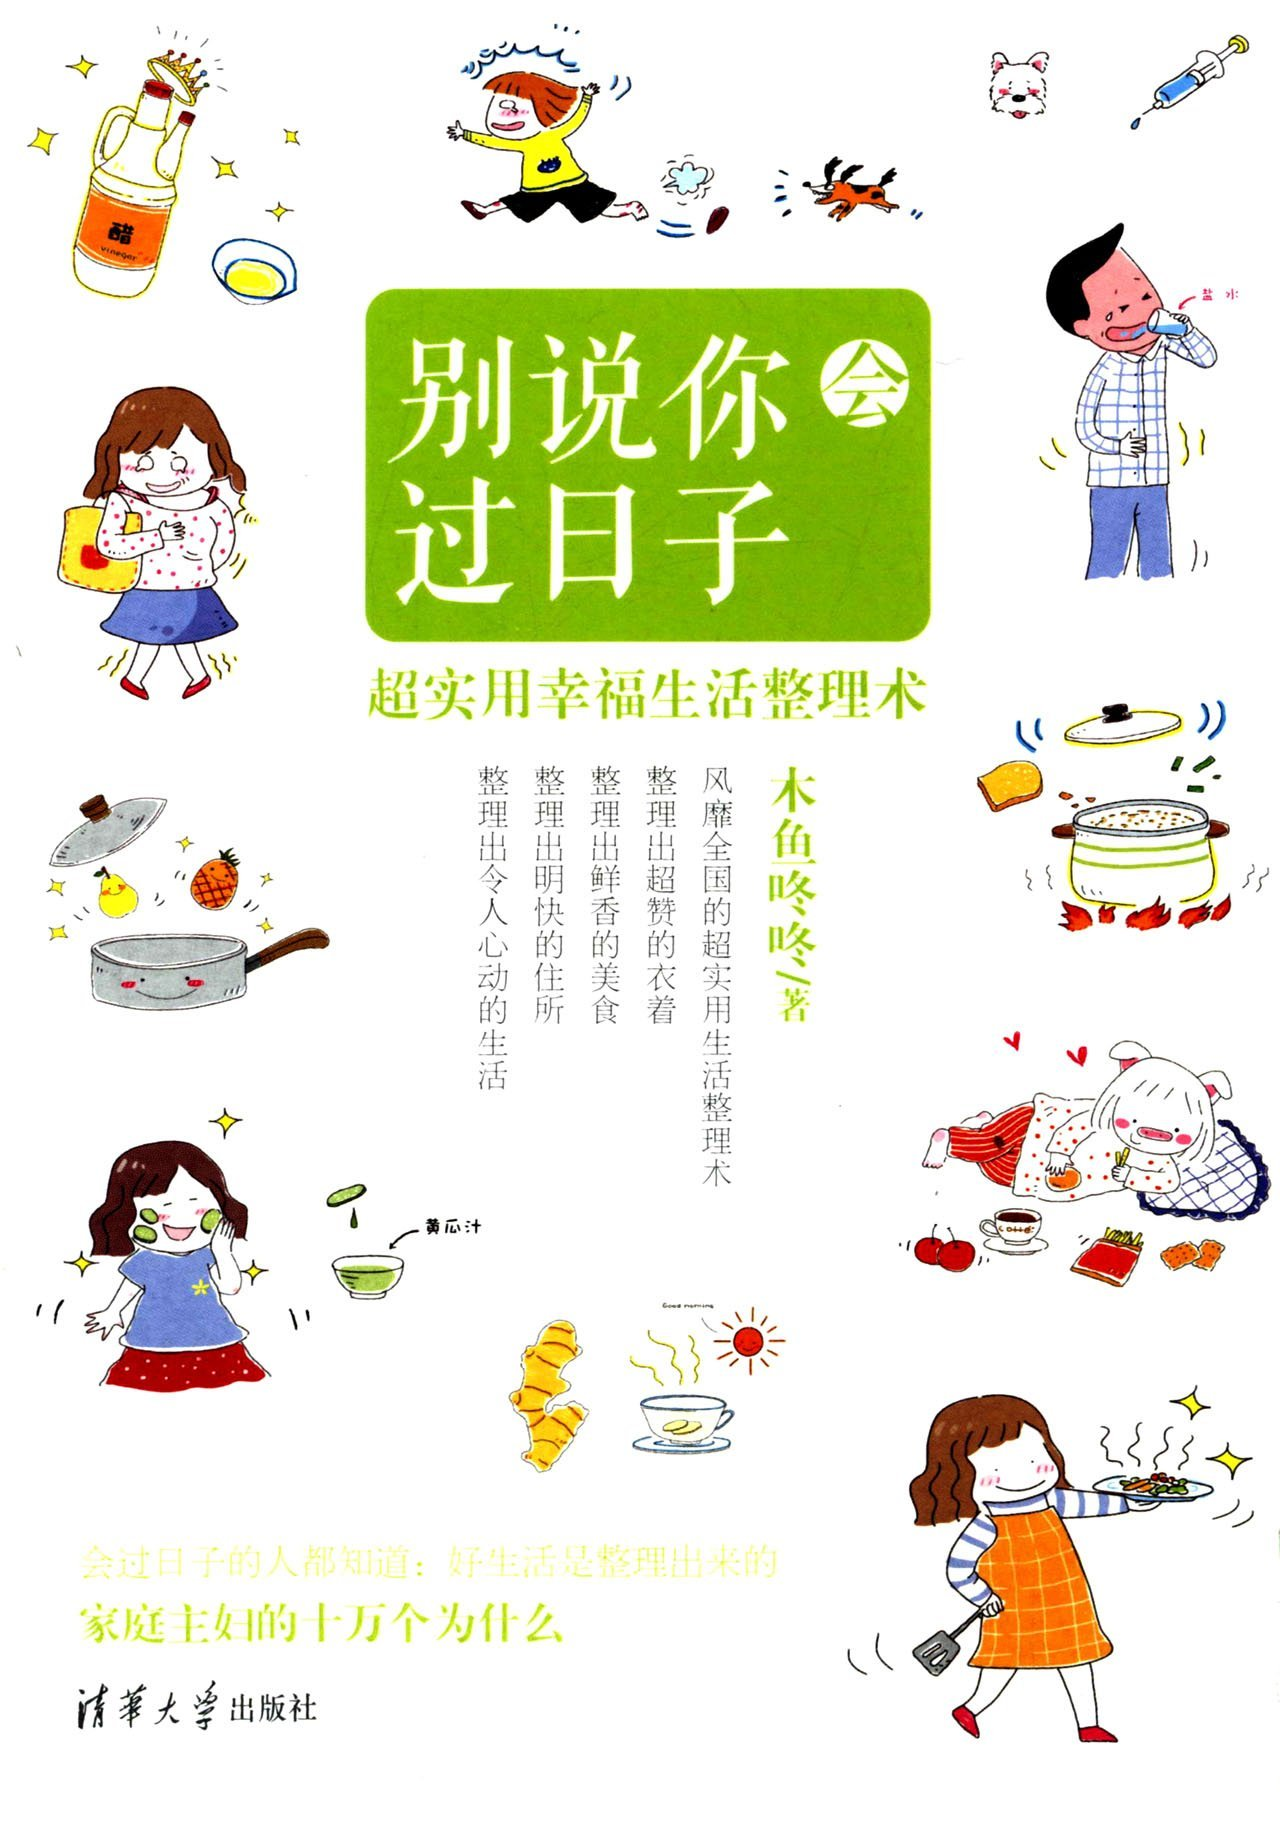 Don't Tell Me You Are Expert at Living: Practical Management Methods for a Better Life (Chinese Edition) pdf